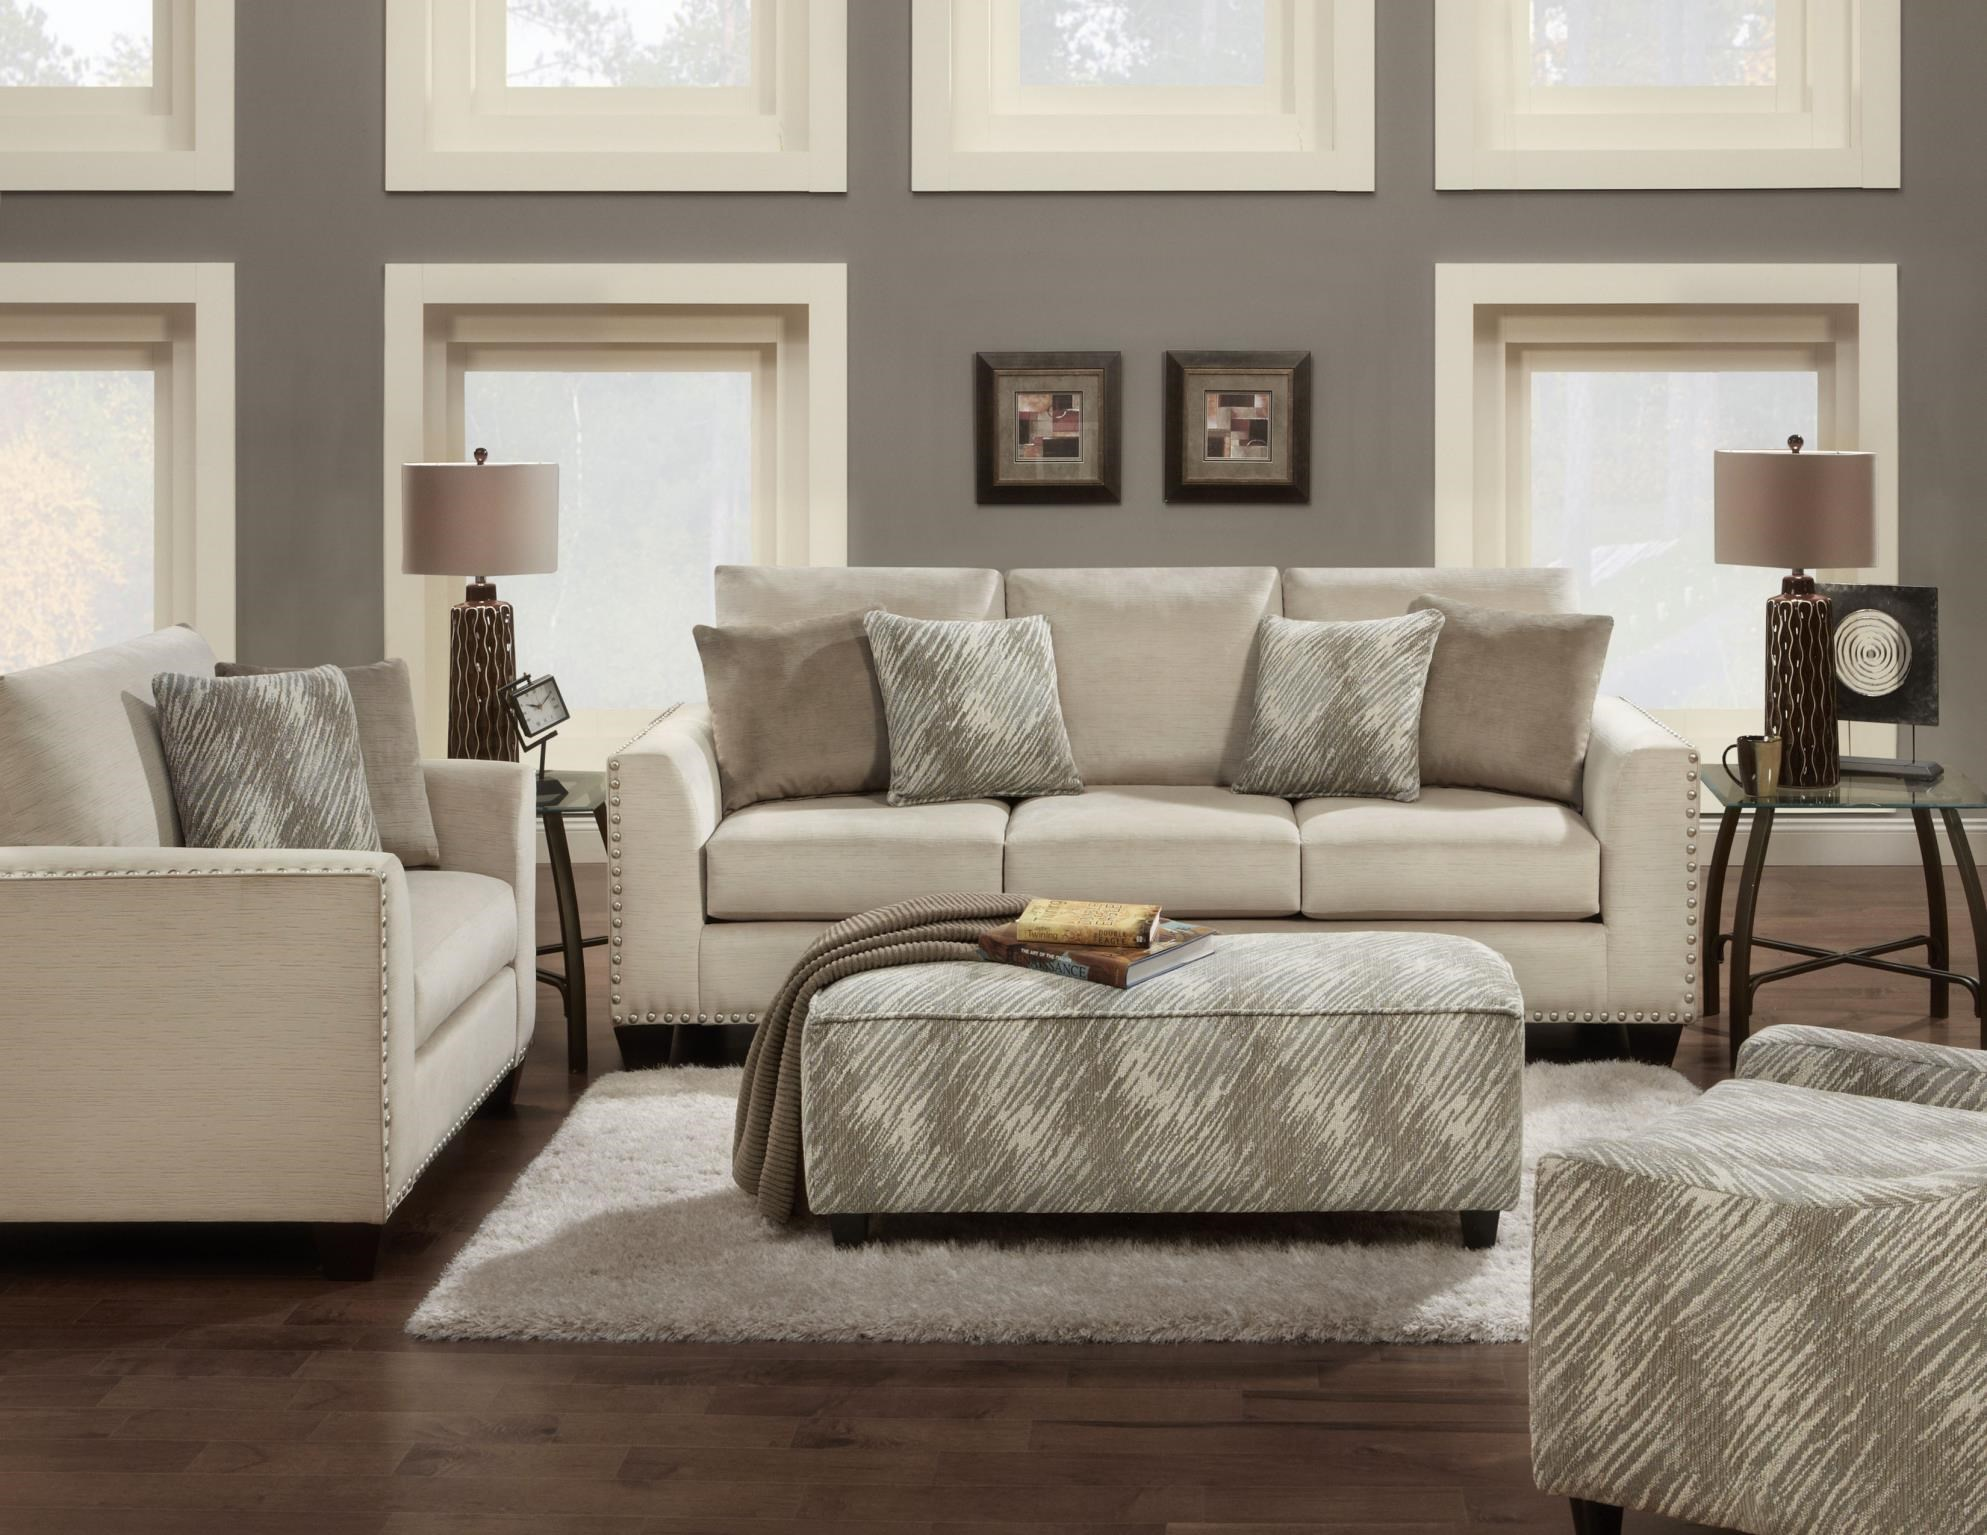 Fusion Furniture 1460 Stationary Living Room Group